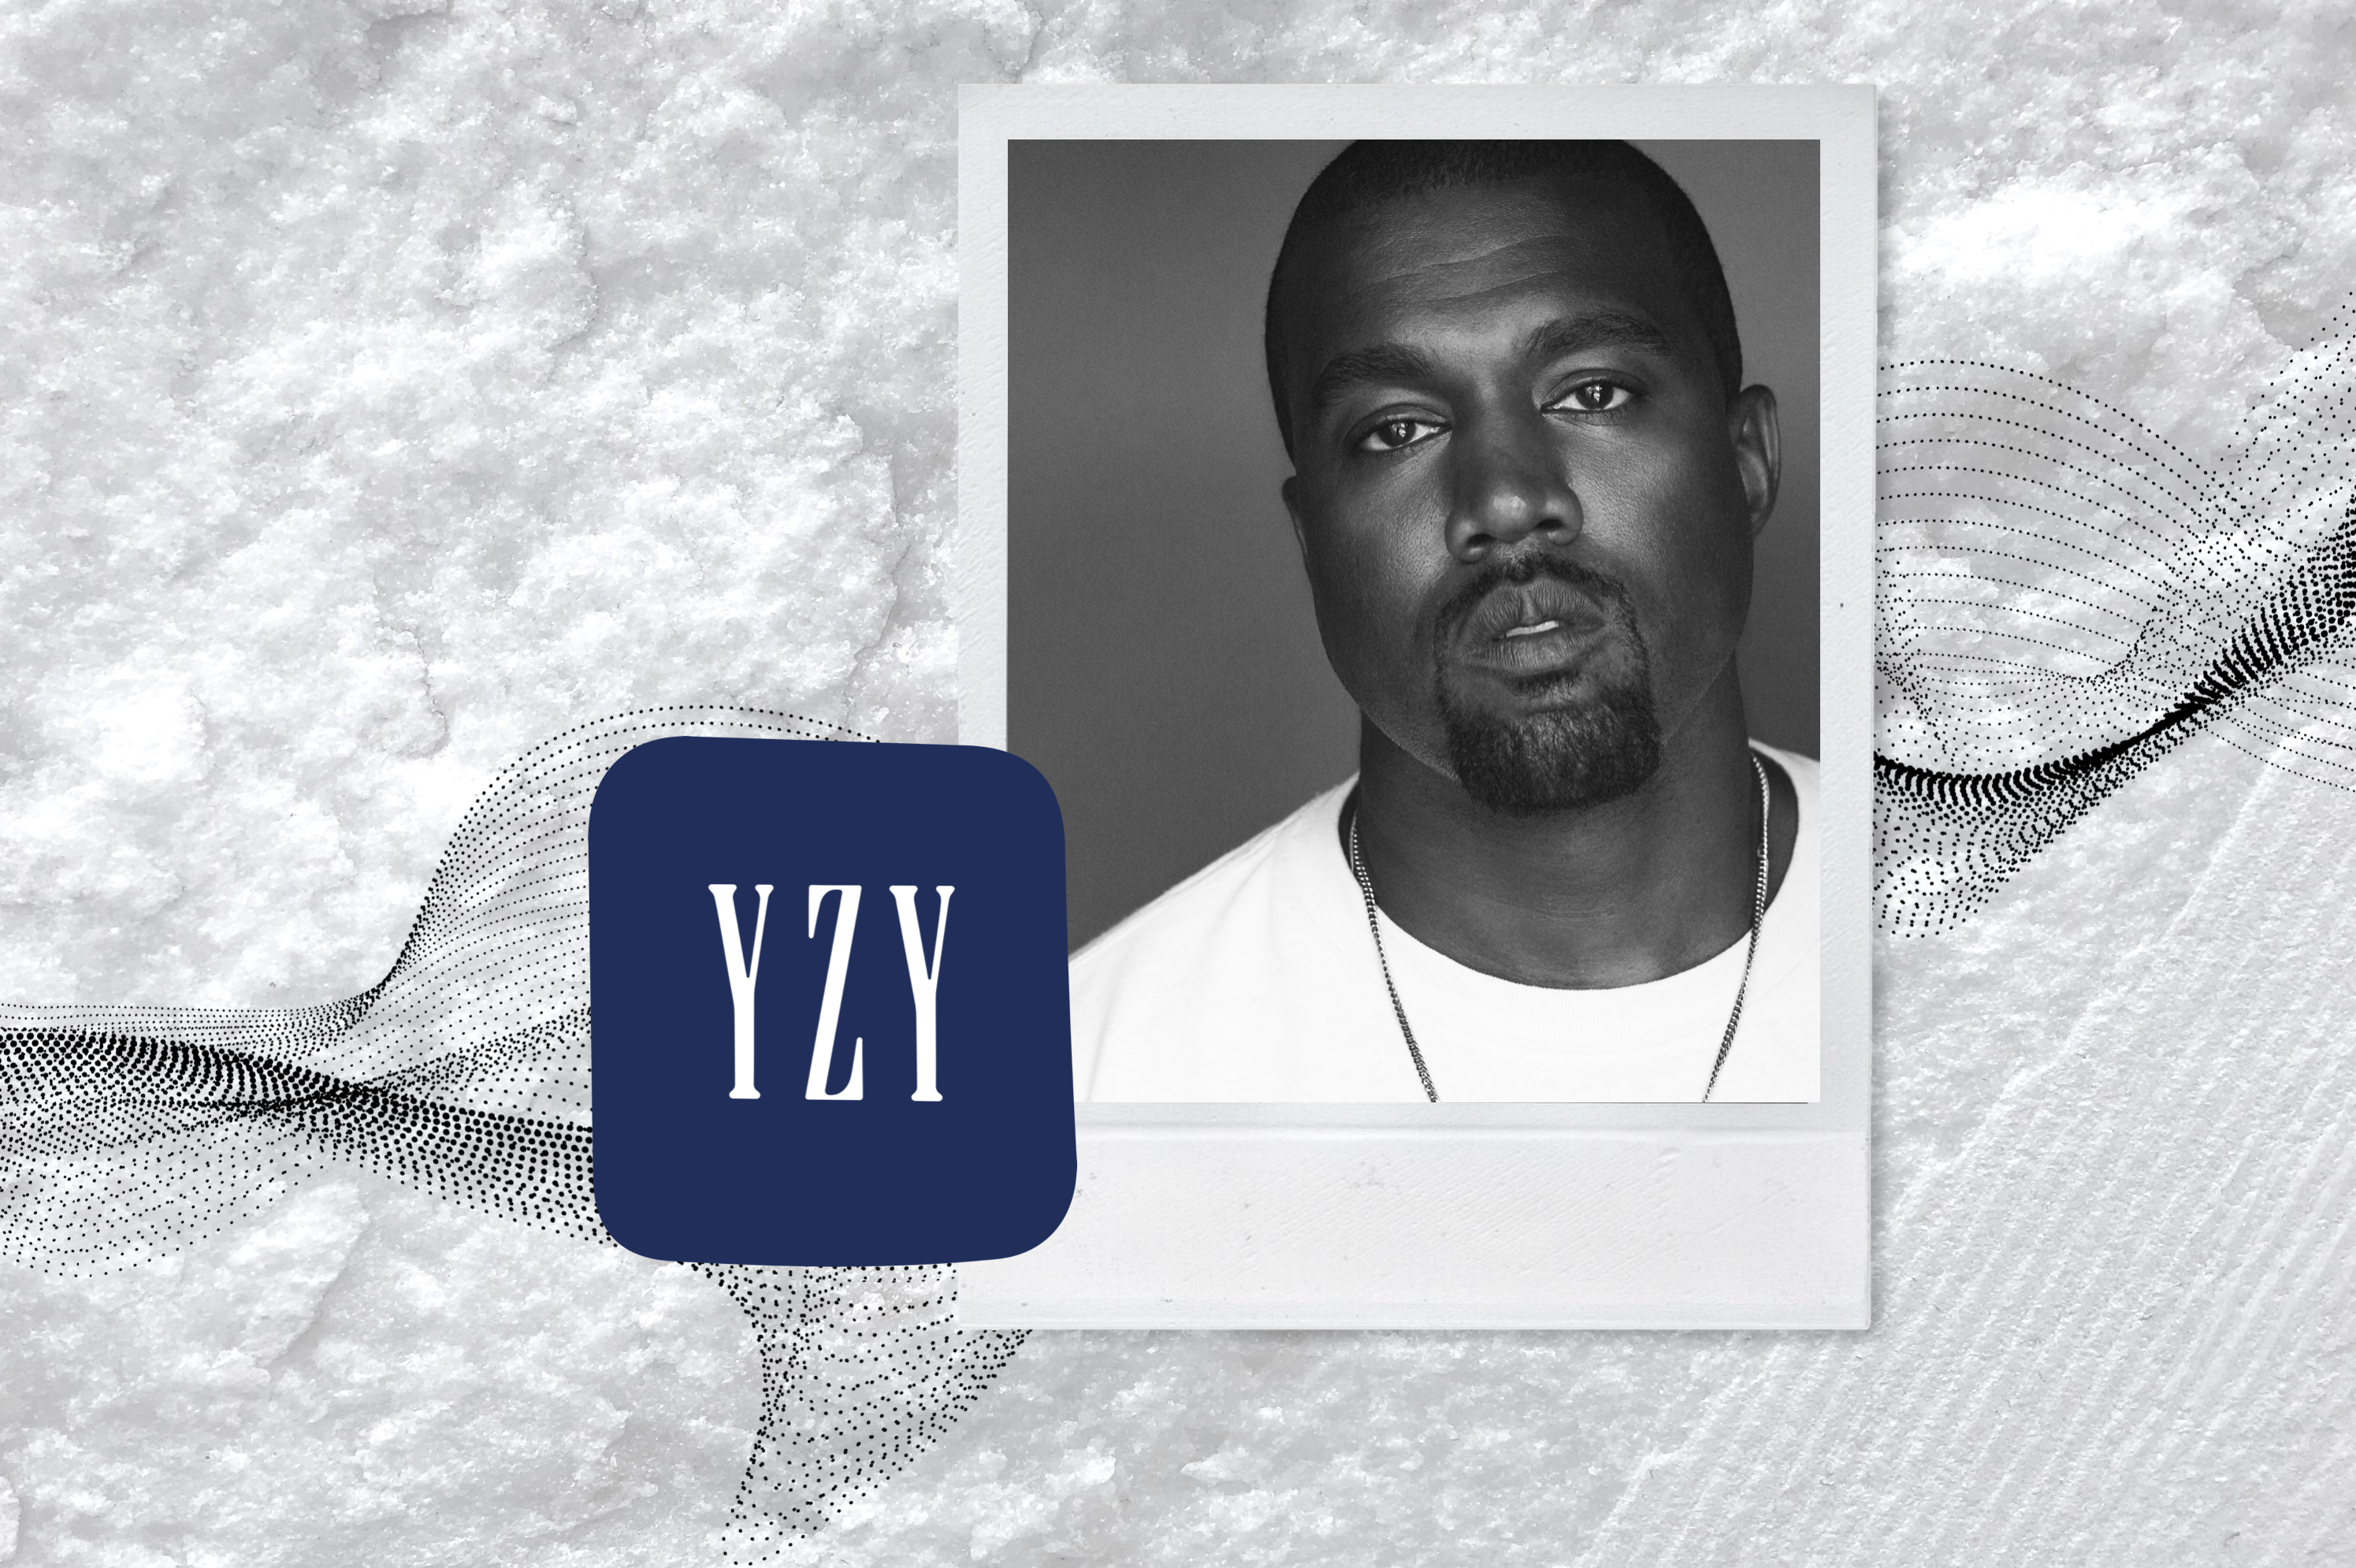 Kanye West's Yeezy Teams with Gap